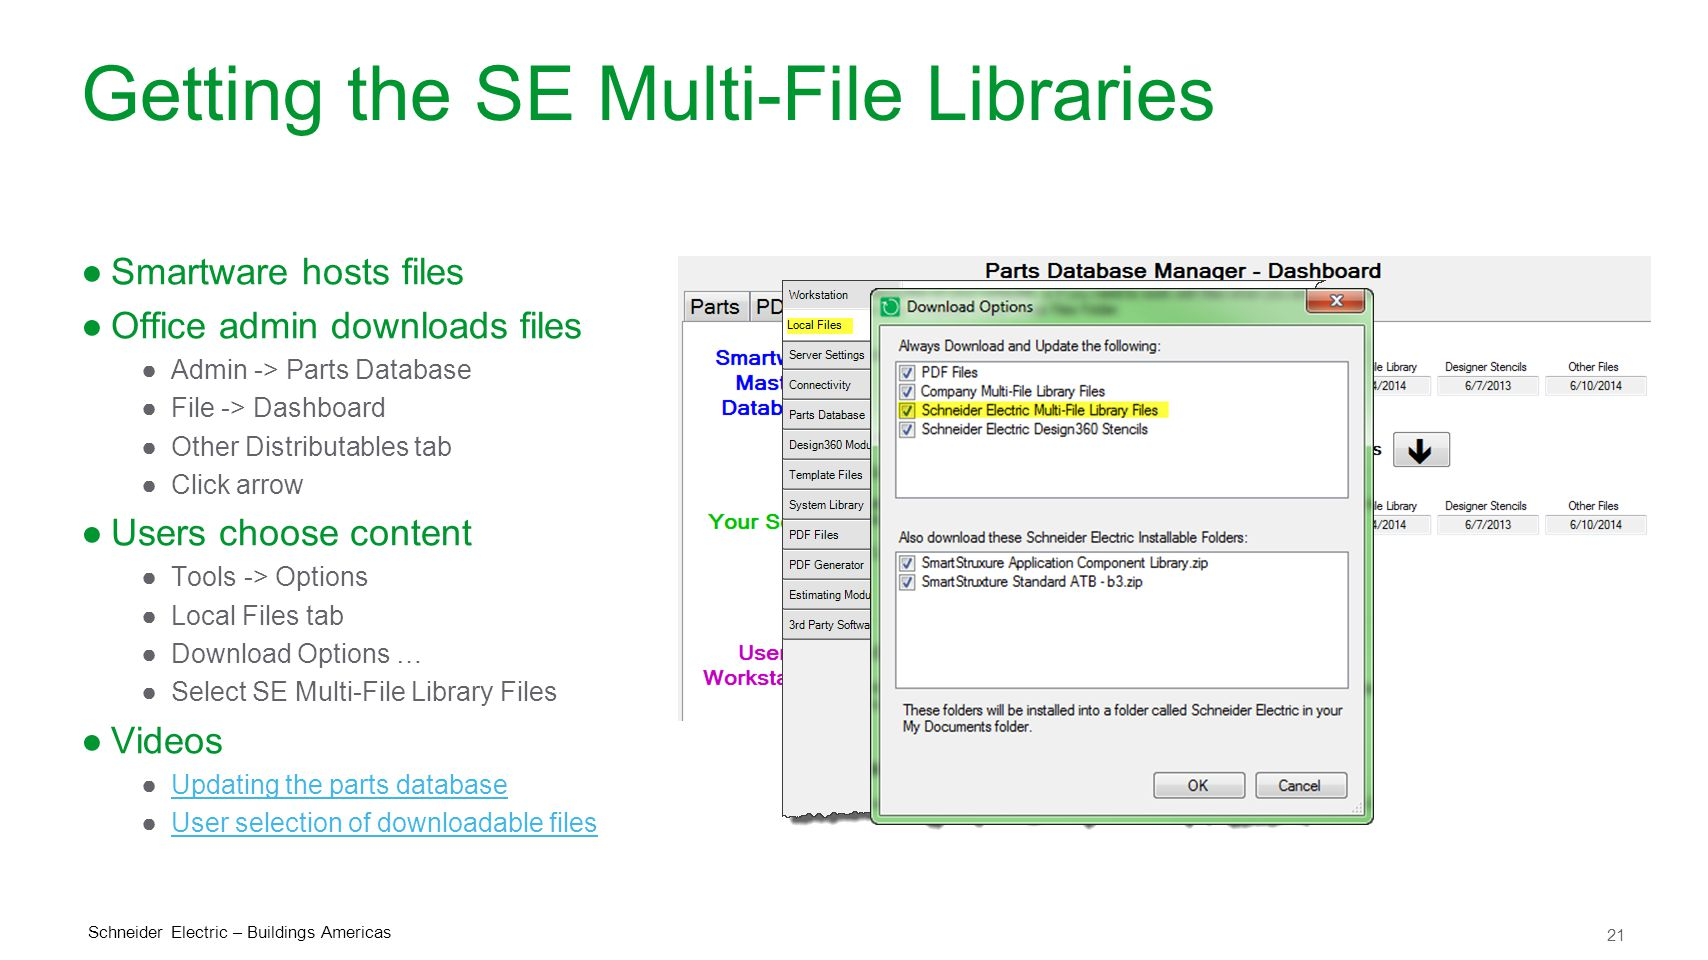 Getting the SE Multi-File Libraries